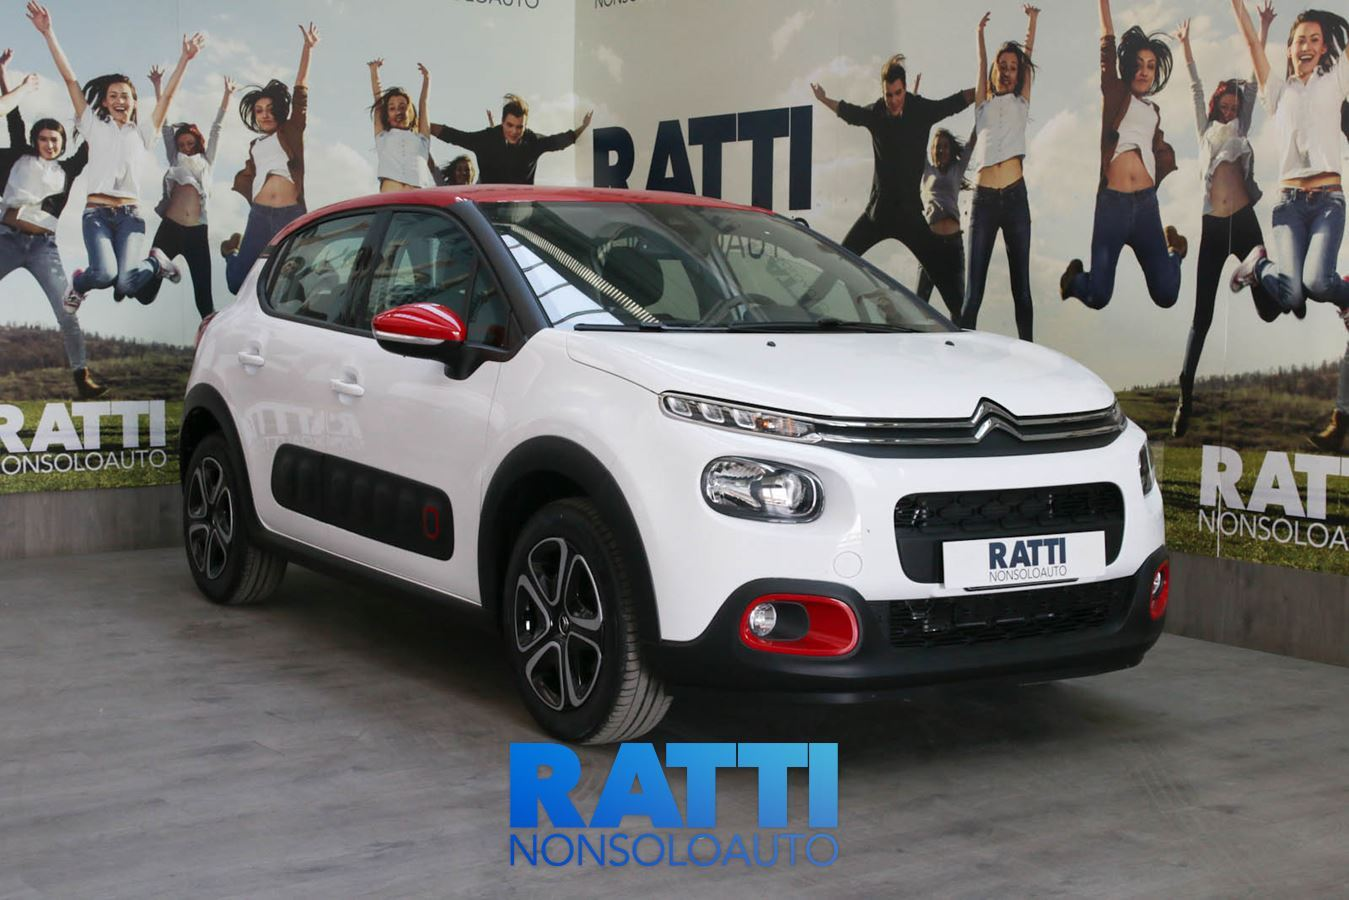 CITROEN C3 PureTech 1.2 82CV S&S Shine + Active Safety Brake Bianco Banchisa  cambio Manuale Benzina Km 0 berlina due volumi 5 porte 5 posti EURO 6